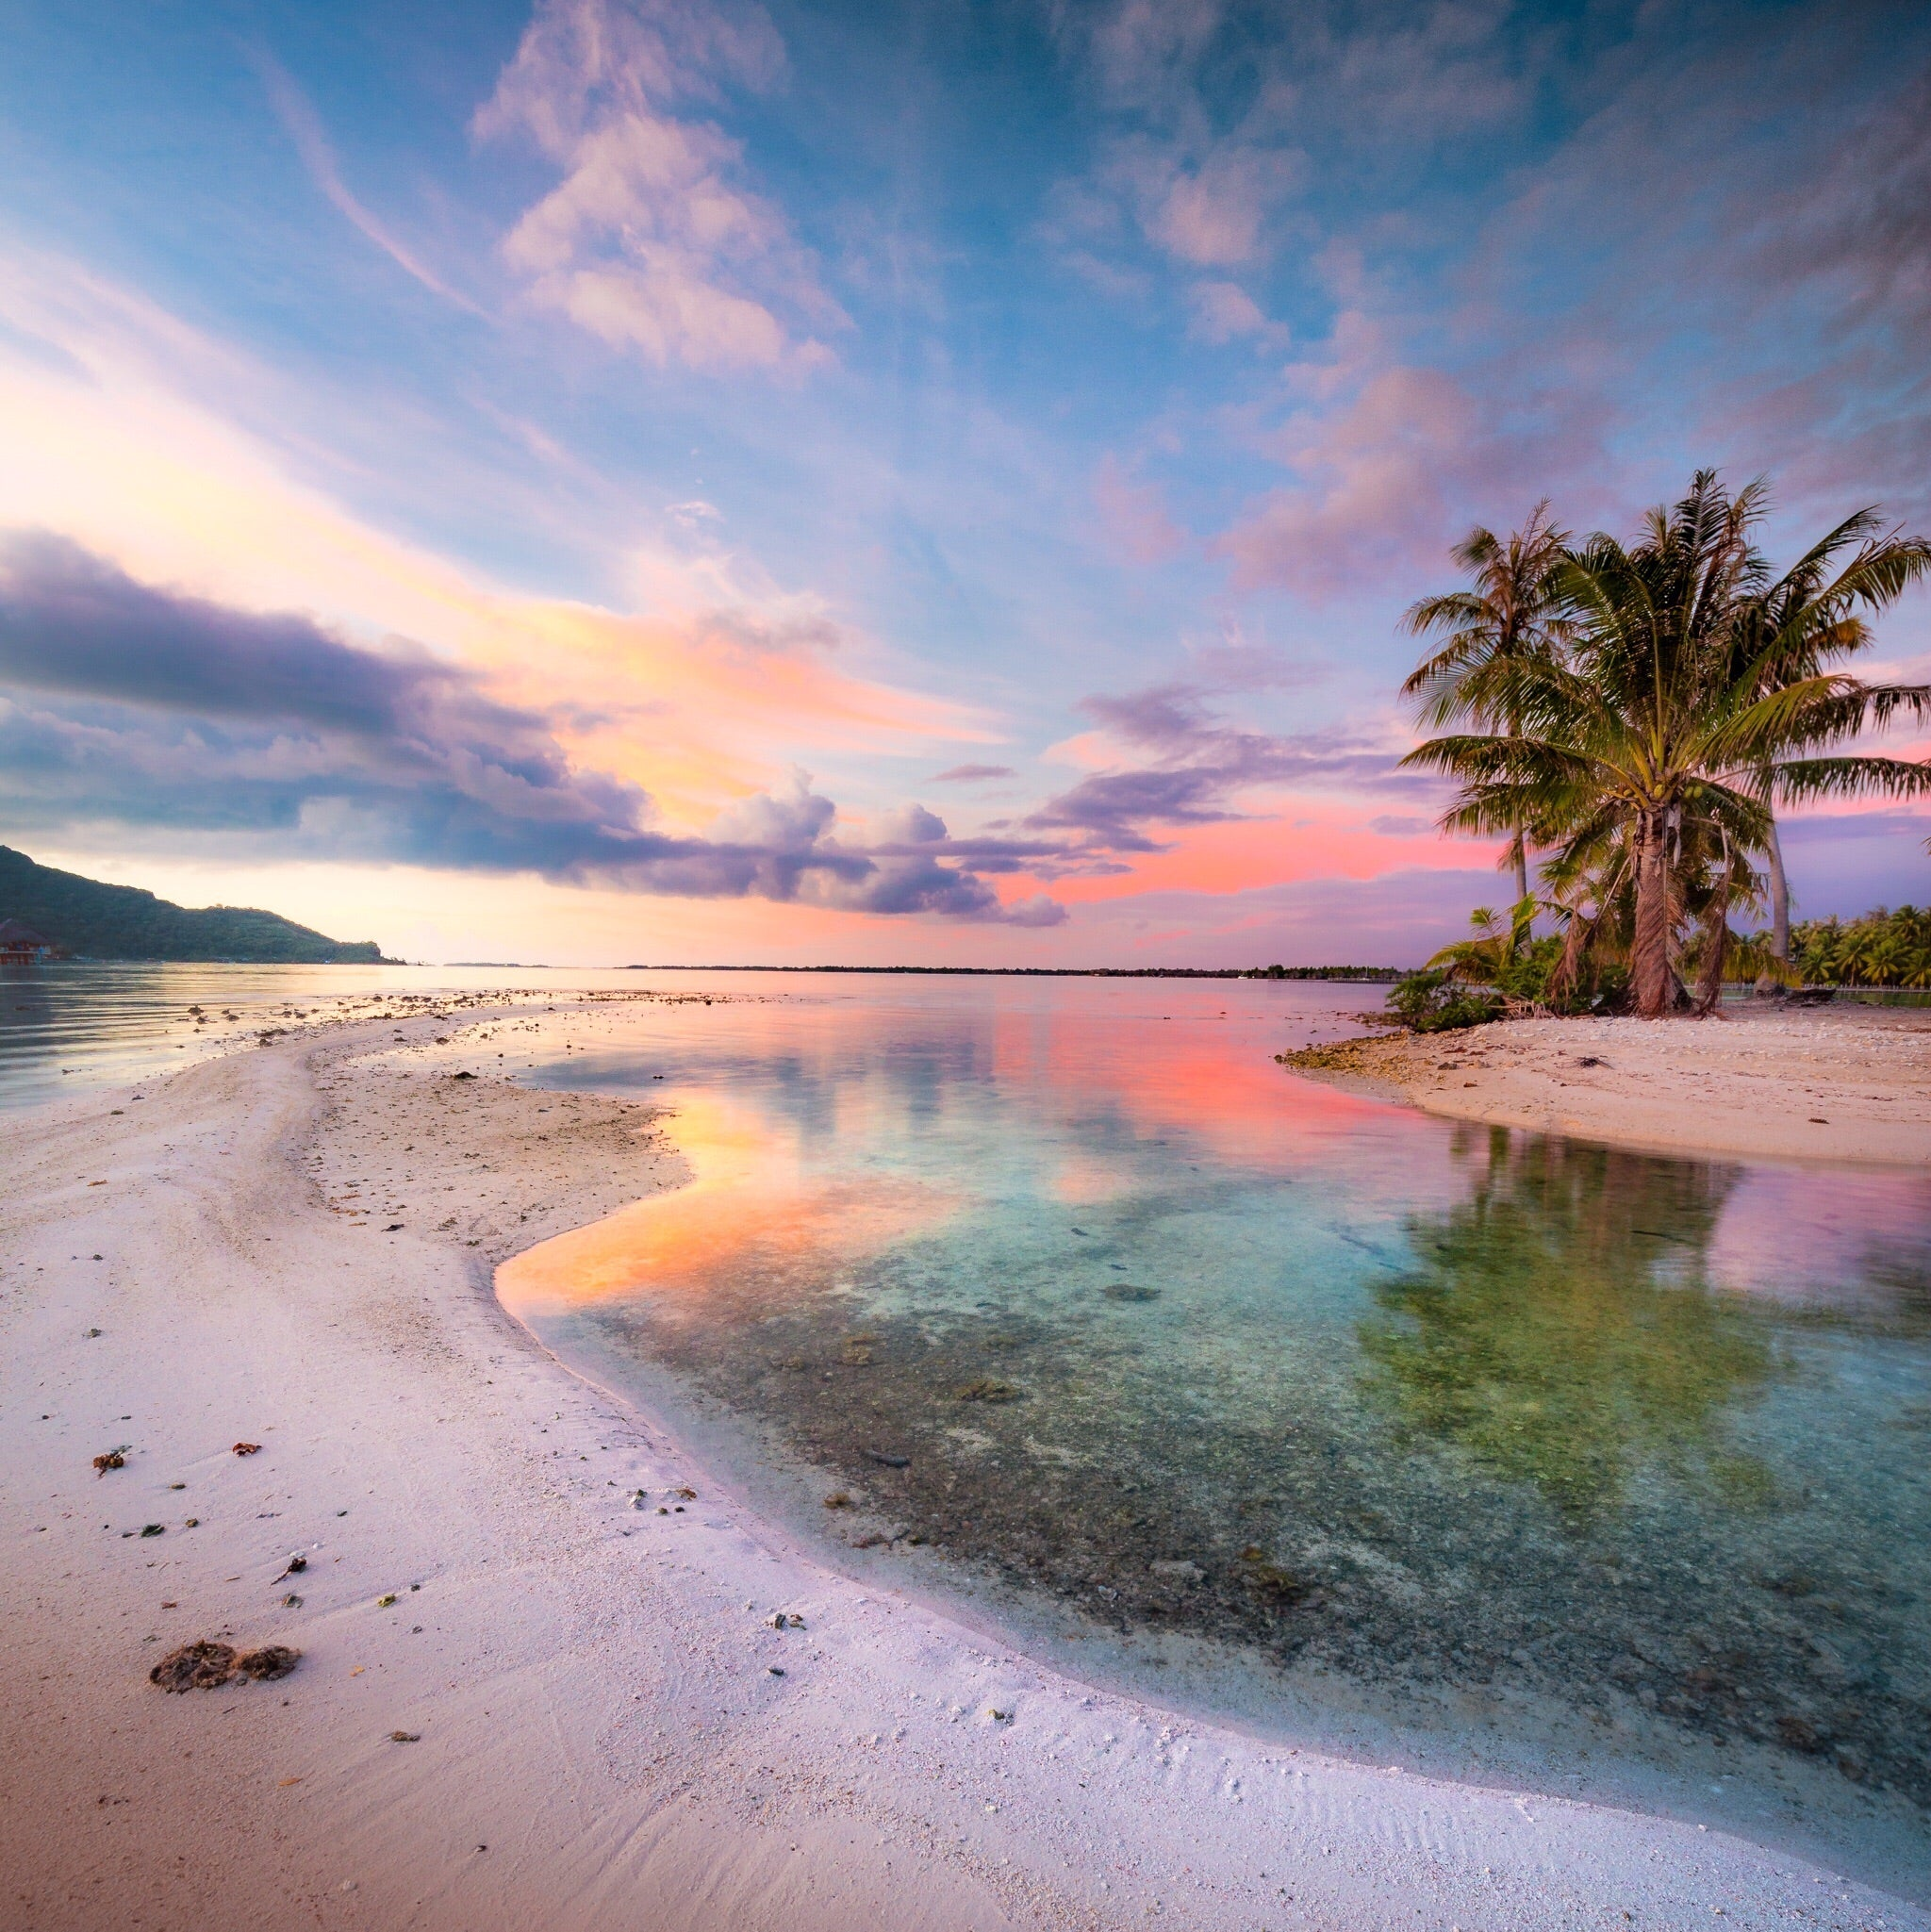 Painted Bora Bora Sky